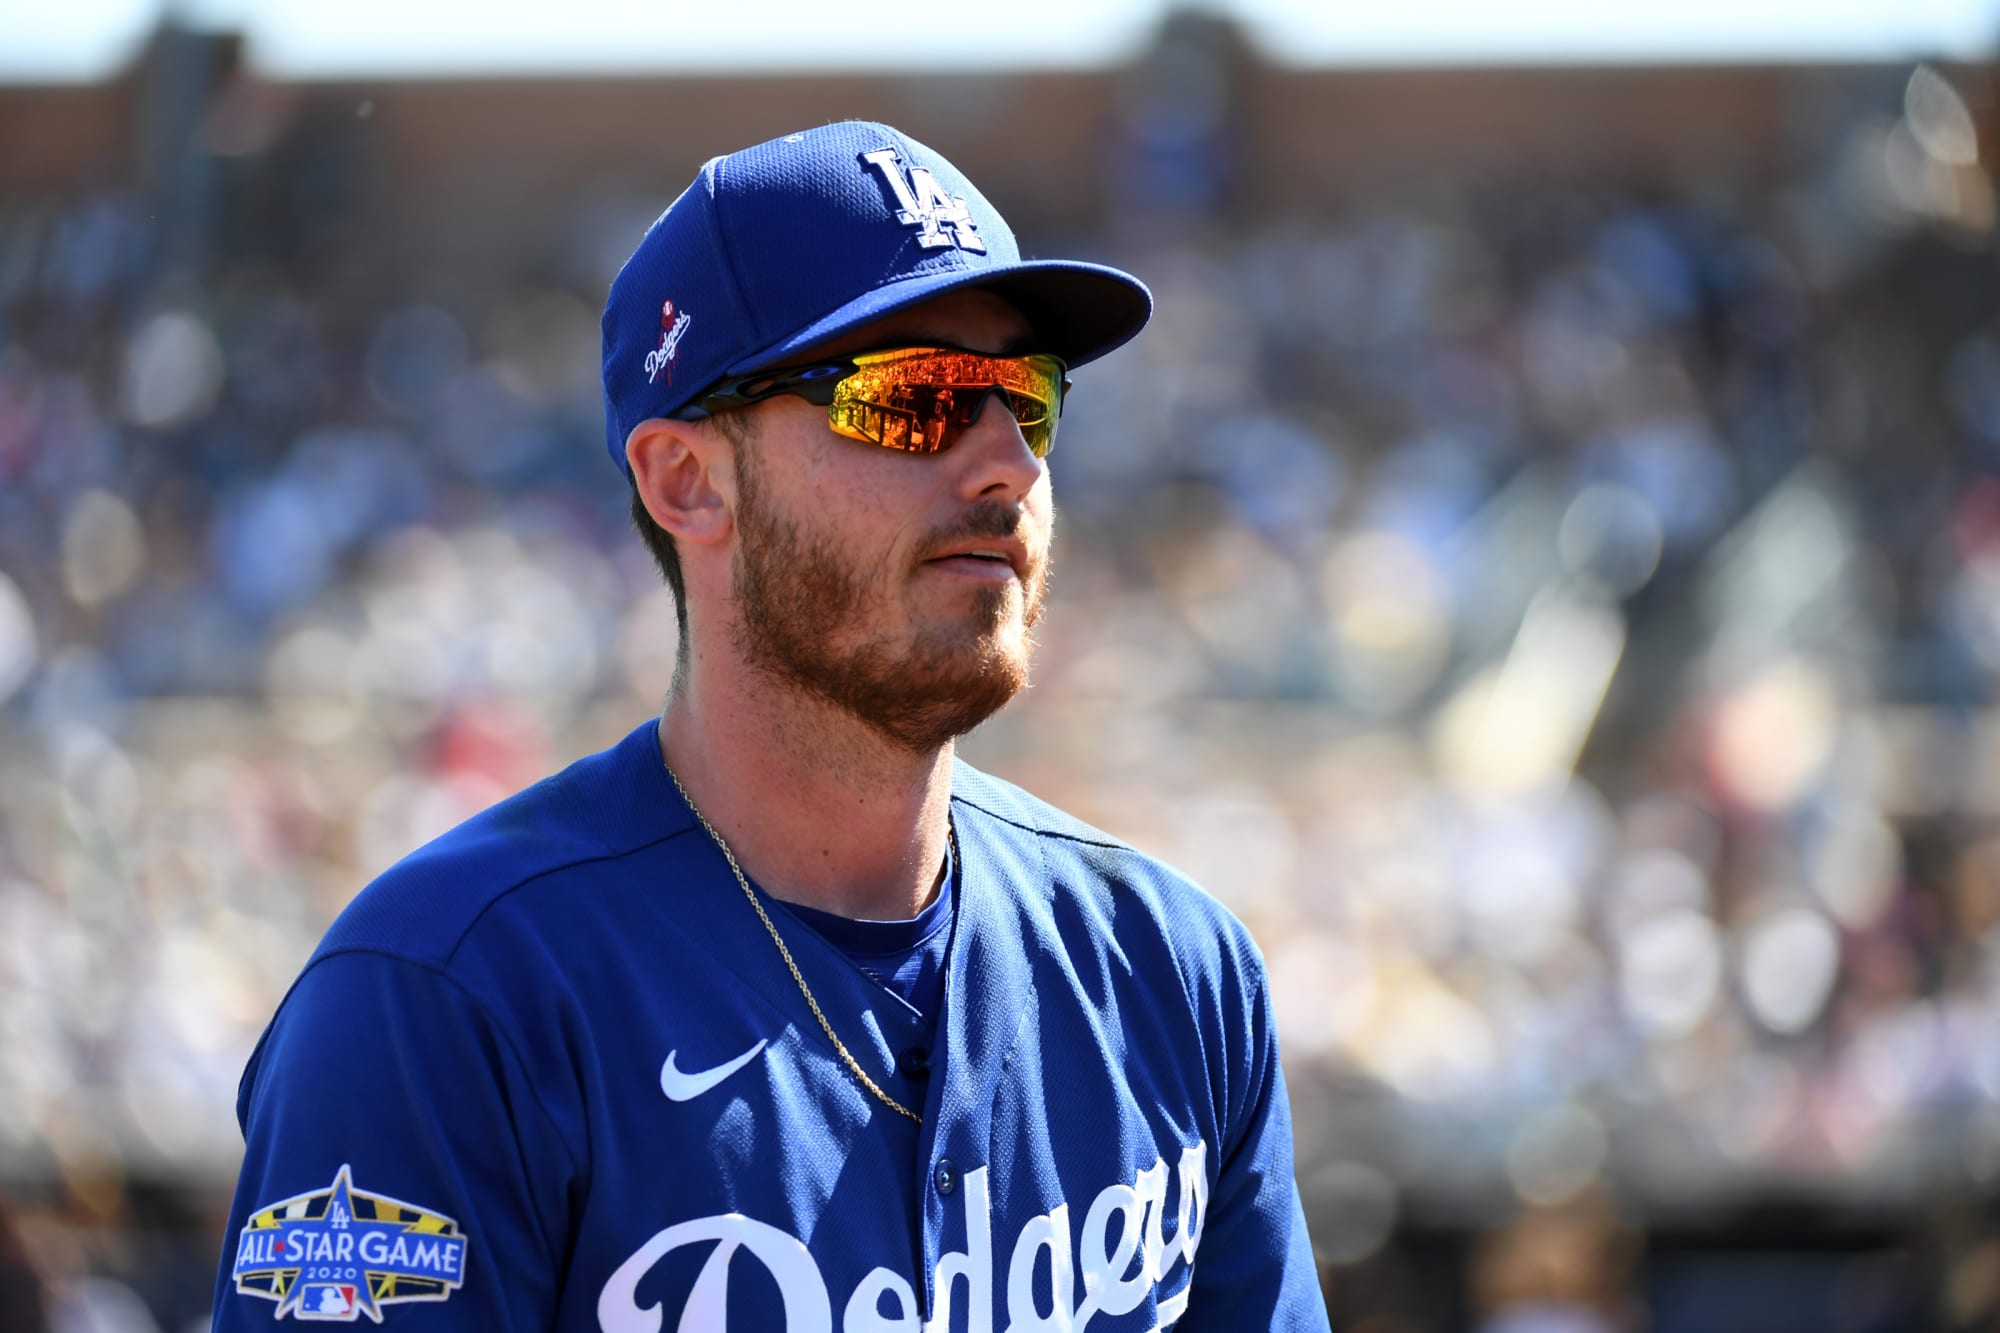 Cody Bellinger's PSA on wearing a mask is what we all need right now